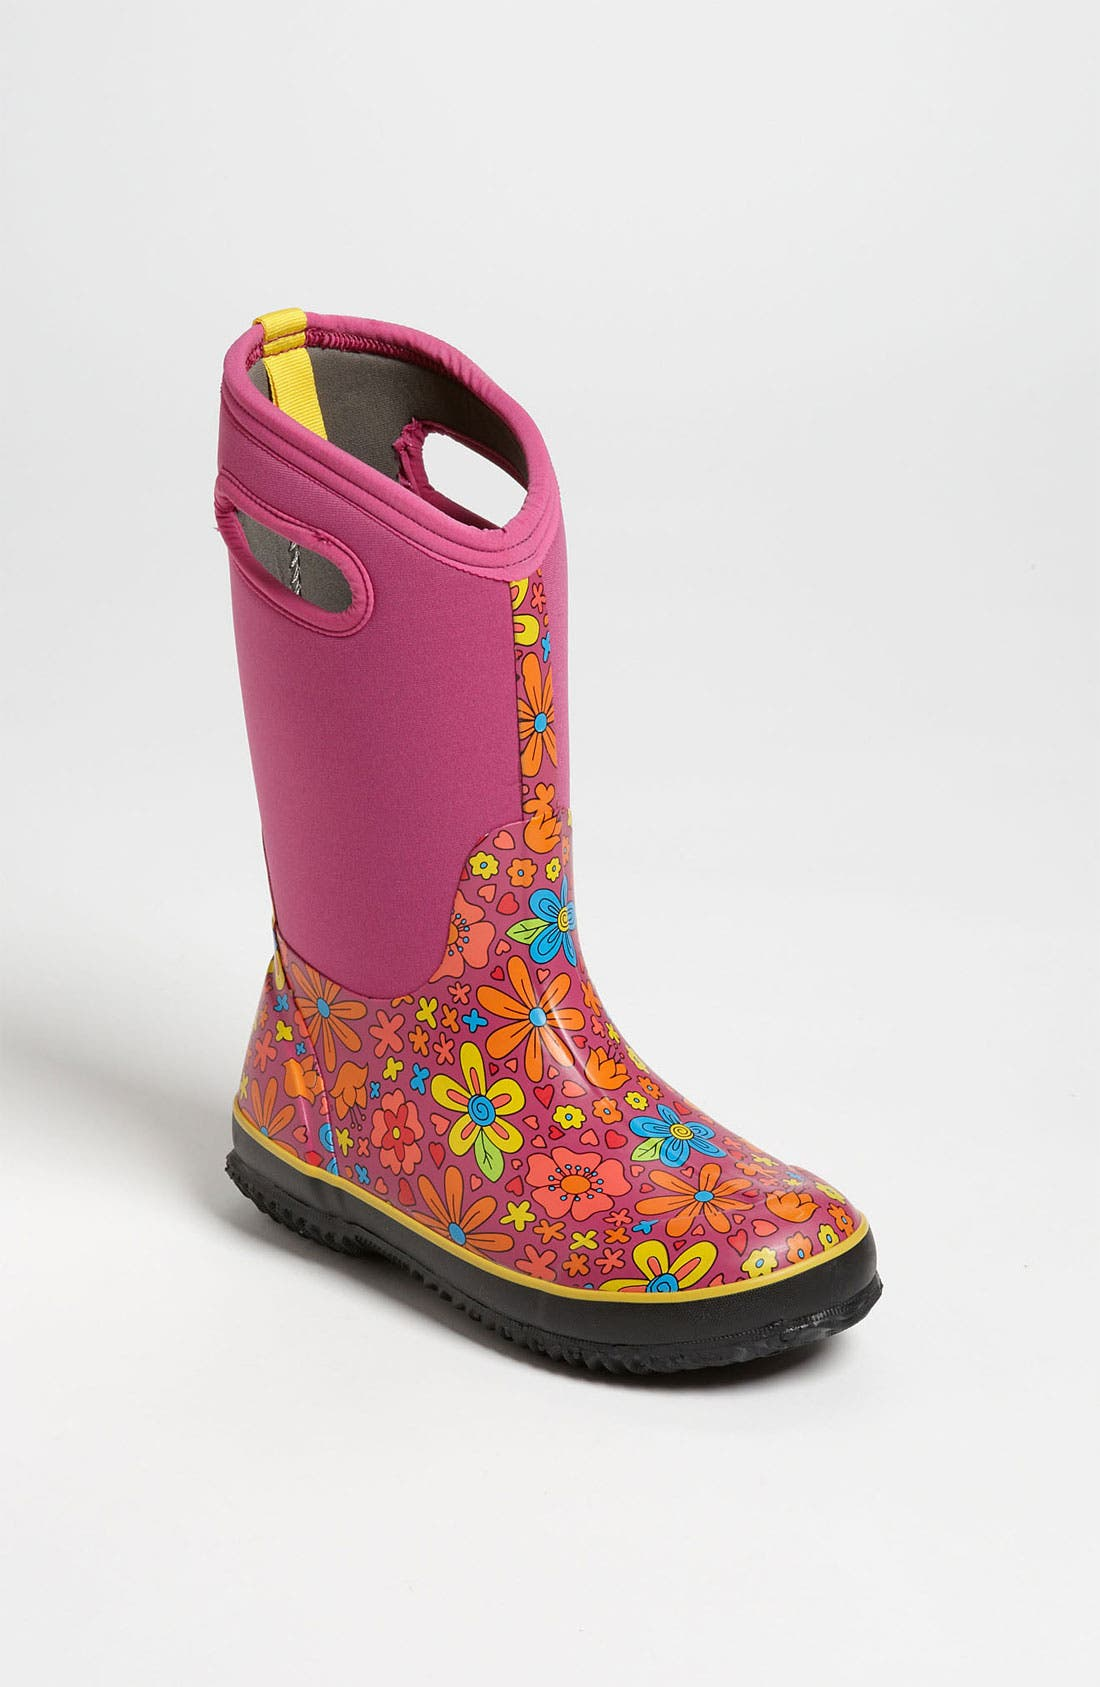 Main Image - Bogs 'Classic High - Mumsie' Waterproof Boot (Toddler, Little Kid & Big Kid)